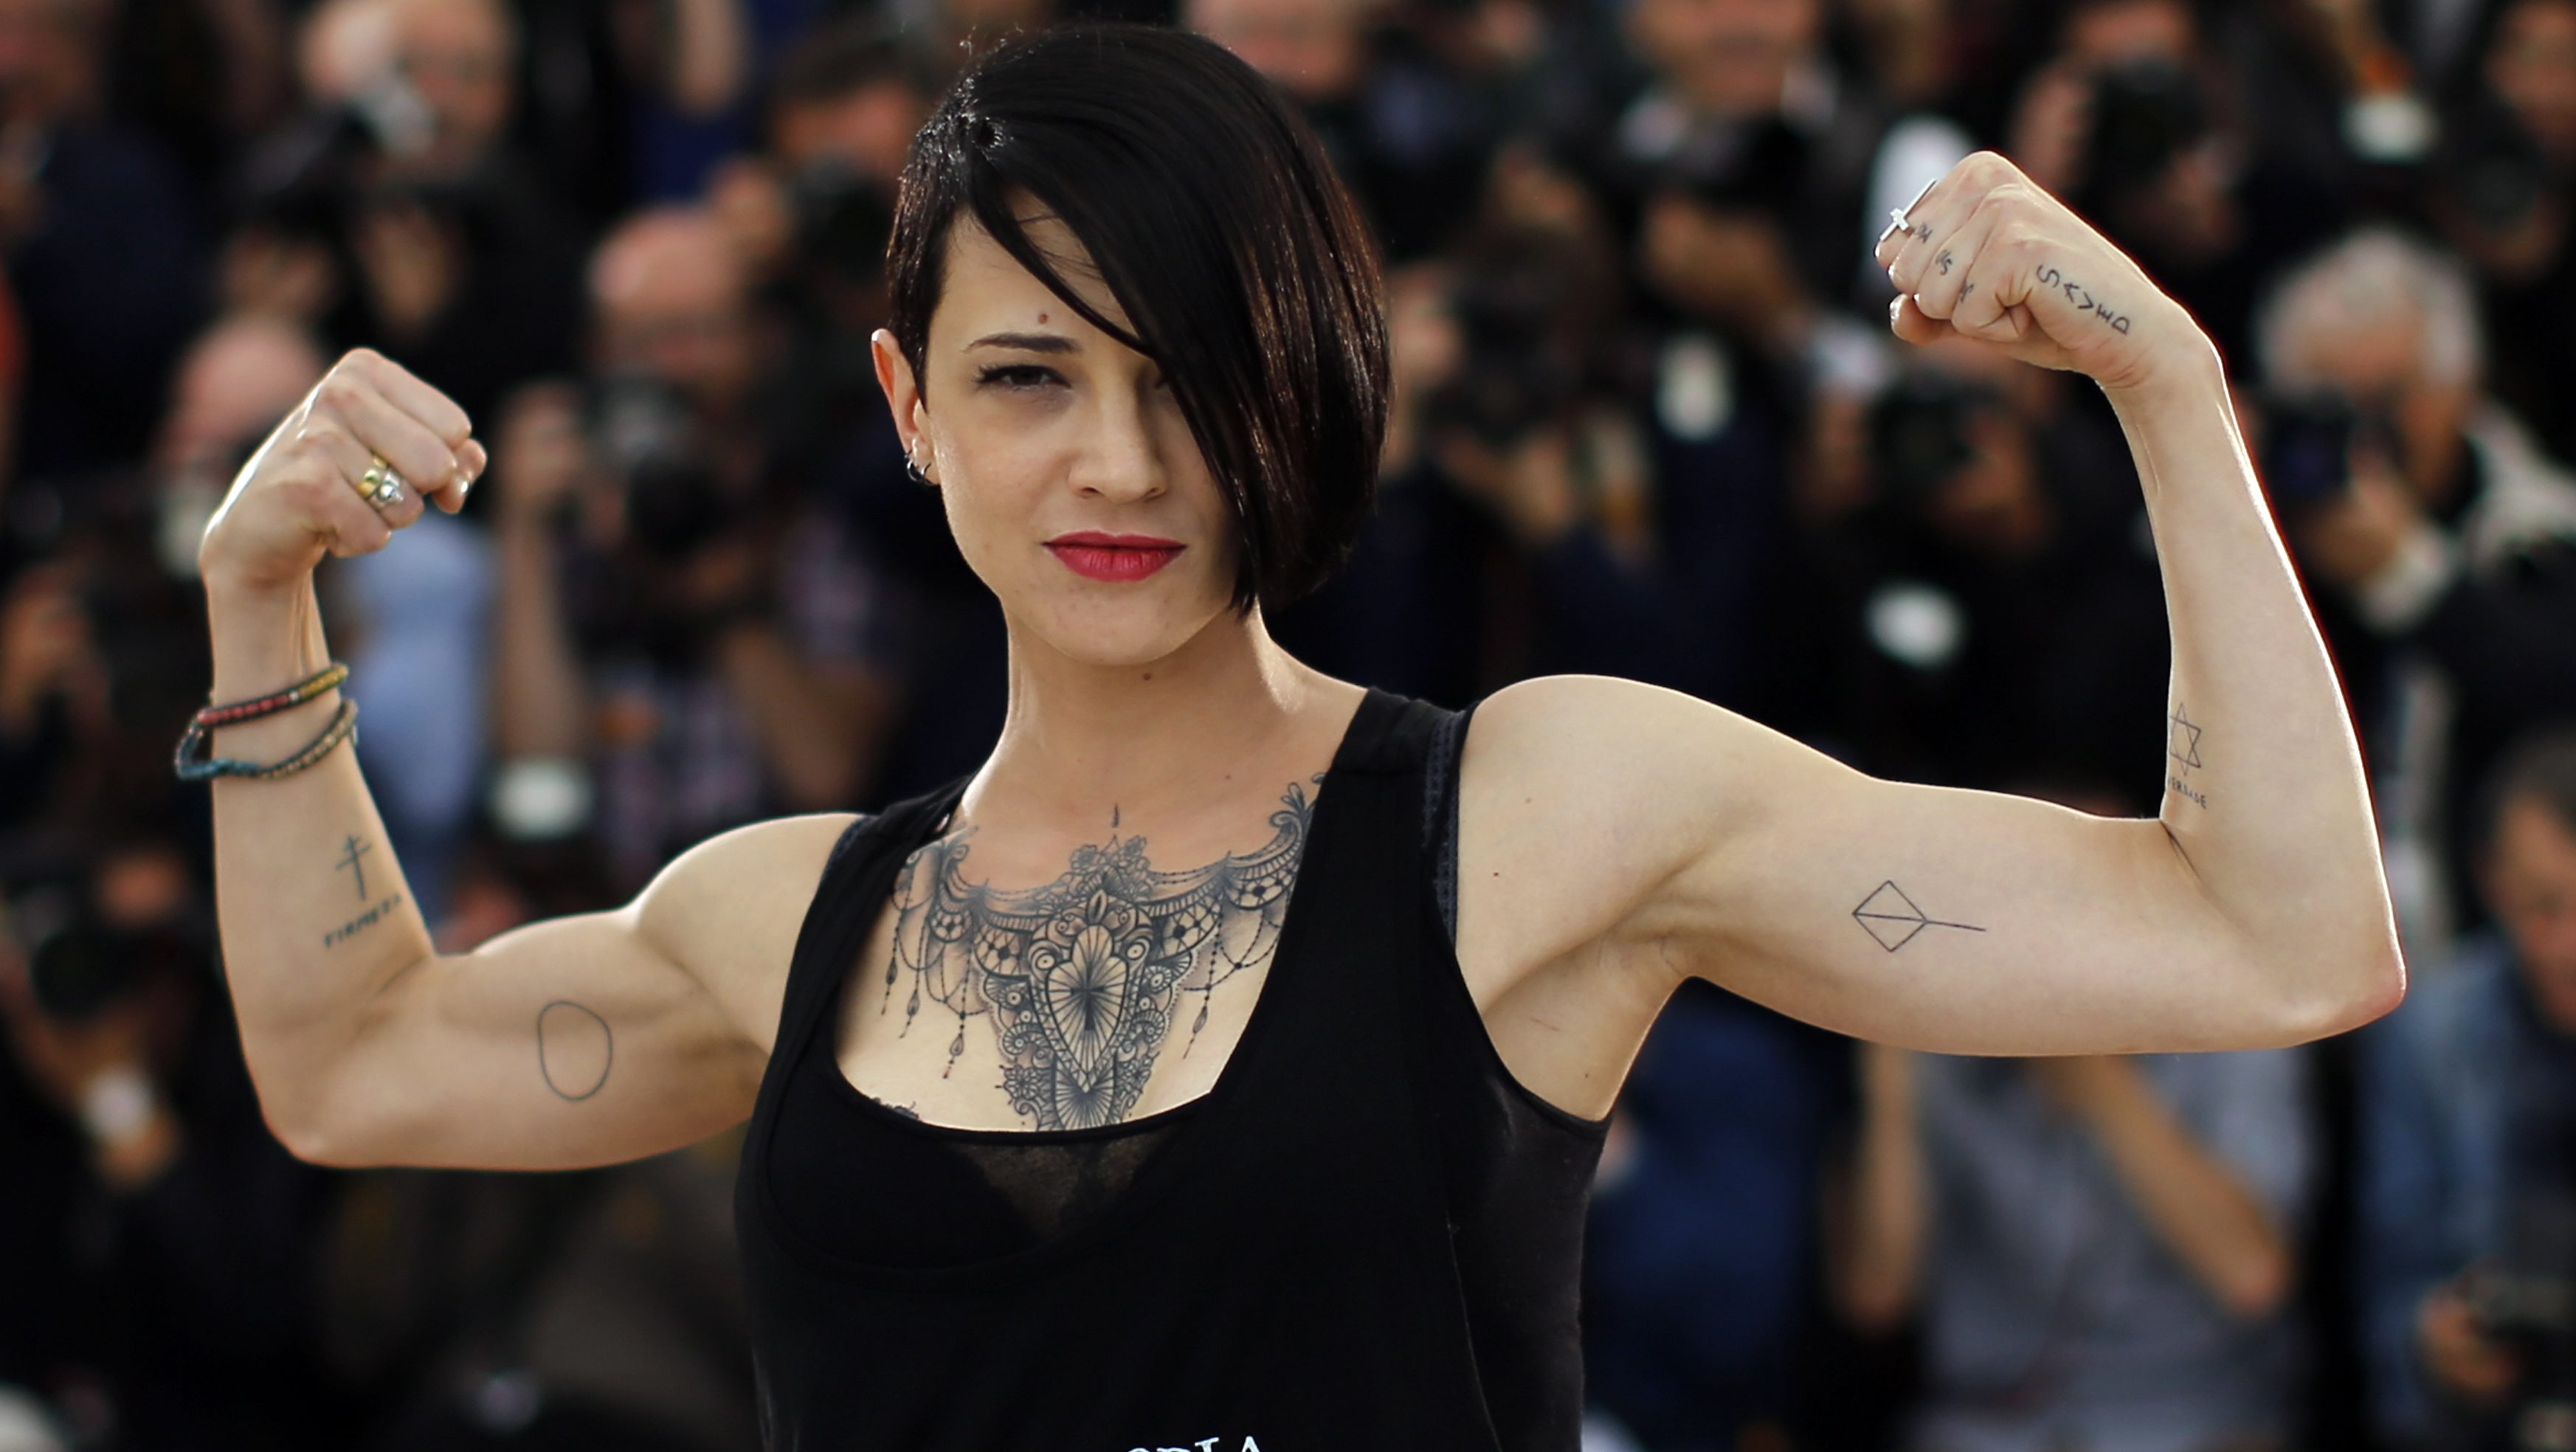 Ambra Battilana Nude italy's response to asia argento's sexual assault claims